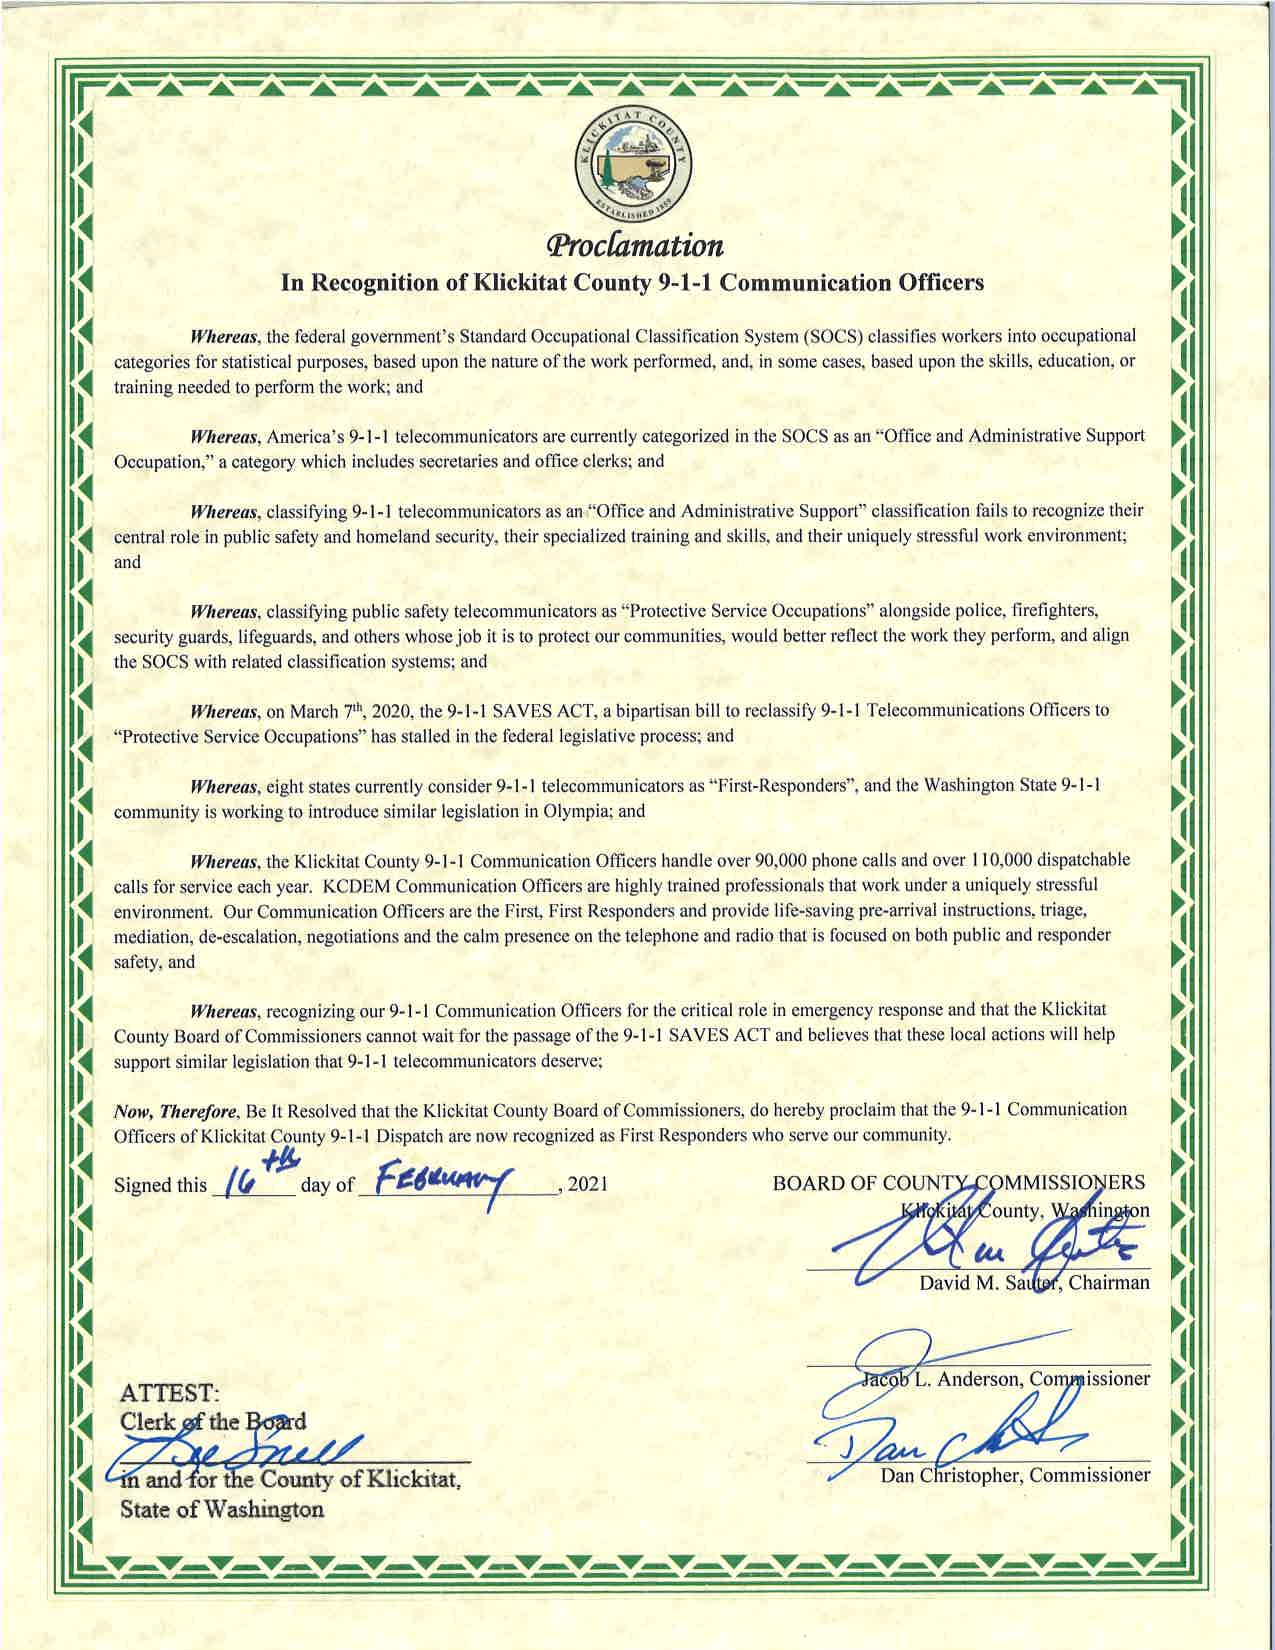 Proclamation 9-1-1 Comms Officers as First Responders